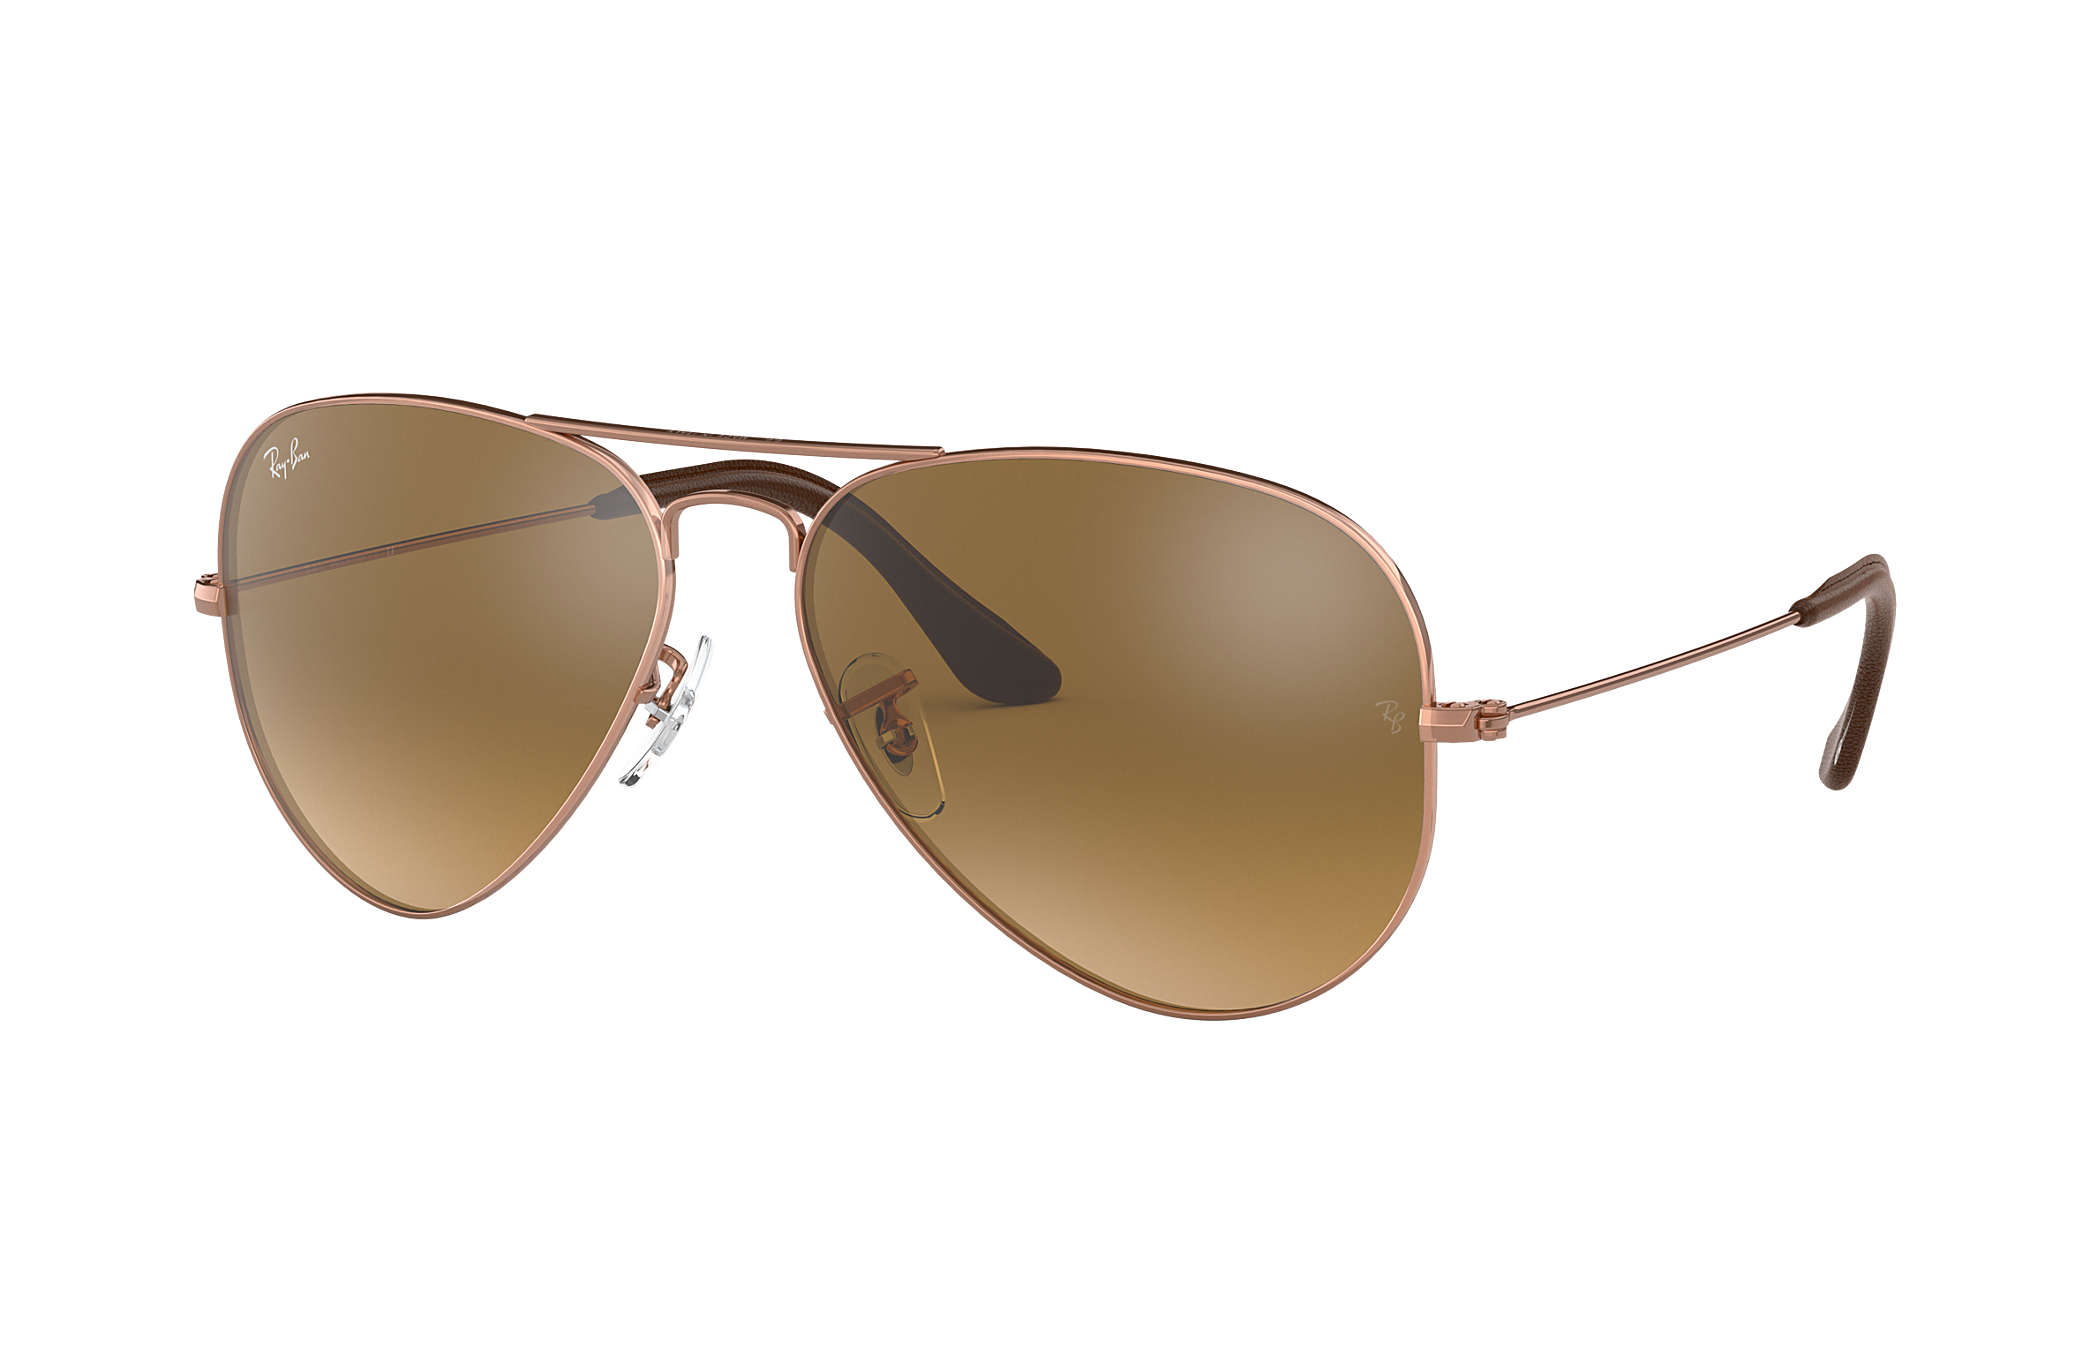 Customize & Personalize Your Ray Ban RB3025 Aviator Large Metal Sunglasses | Ray Ban® USA